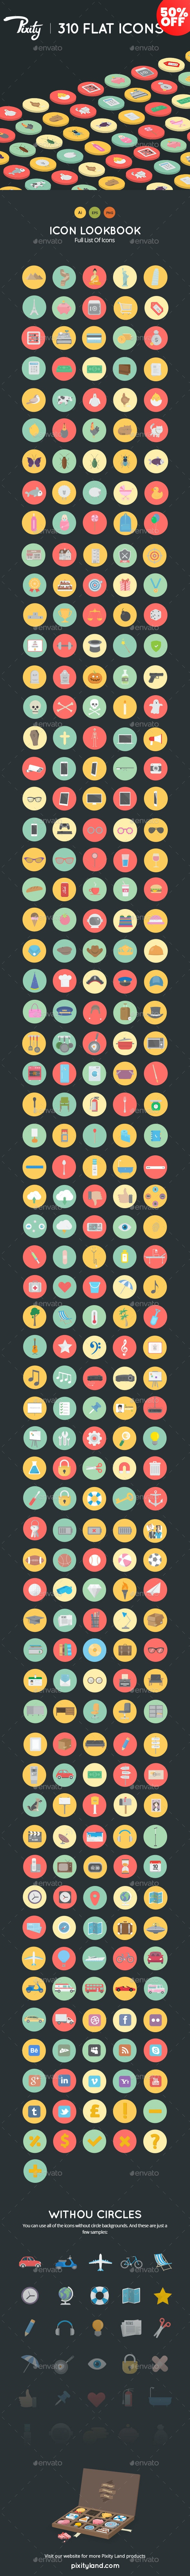 Pixity - 310 Flat Icons - Miscellaneous Characters